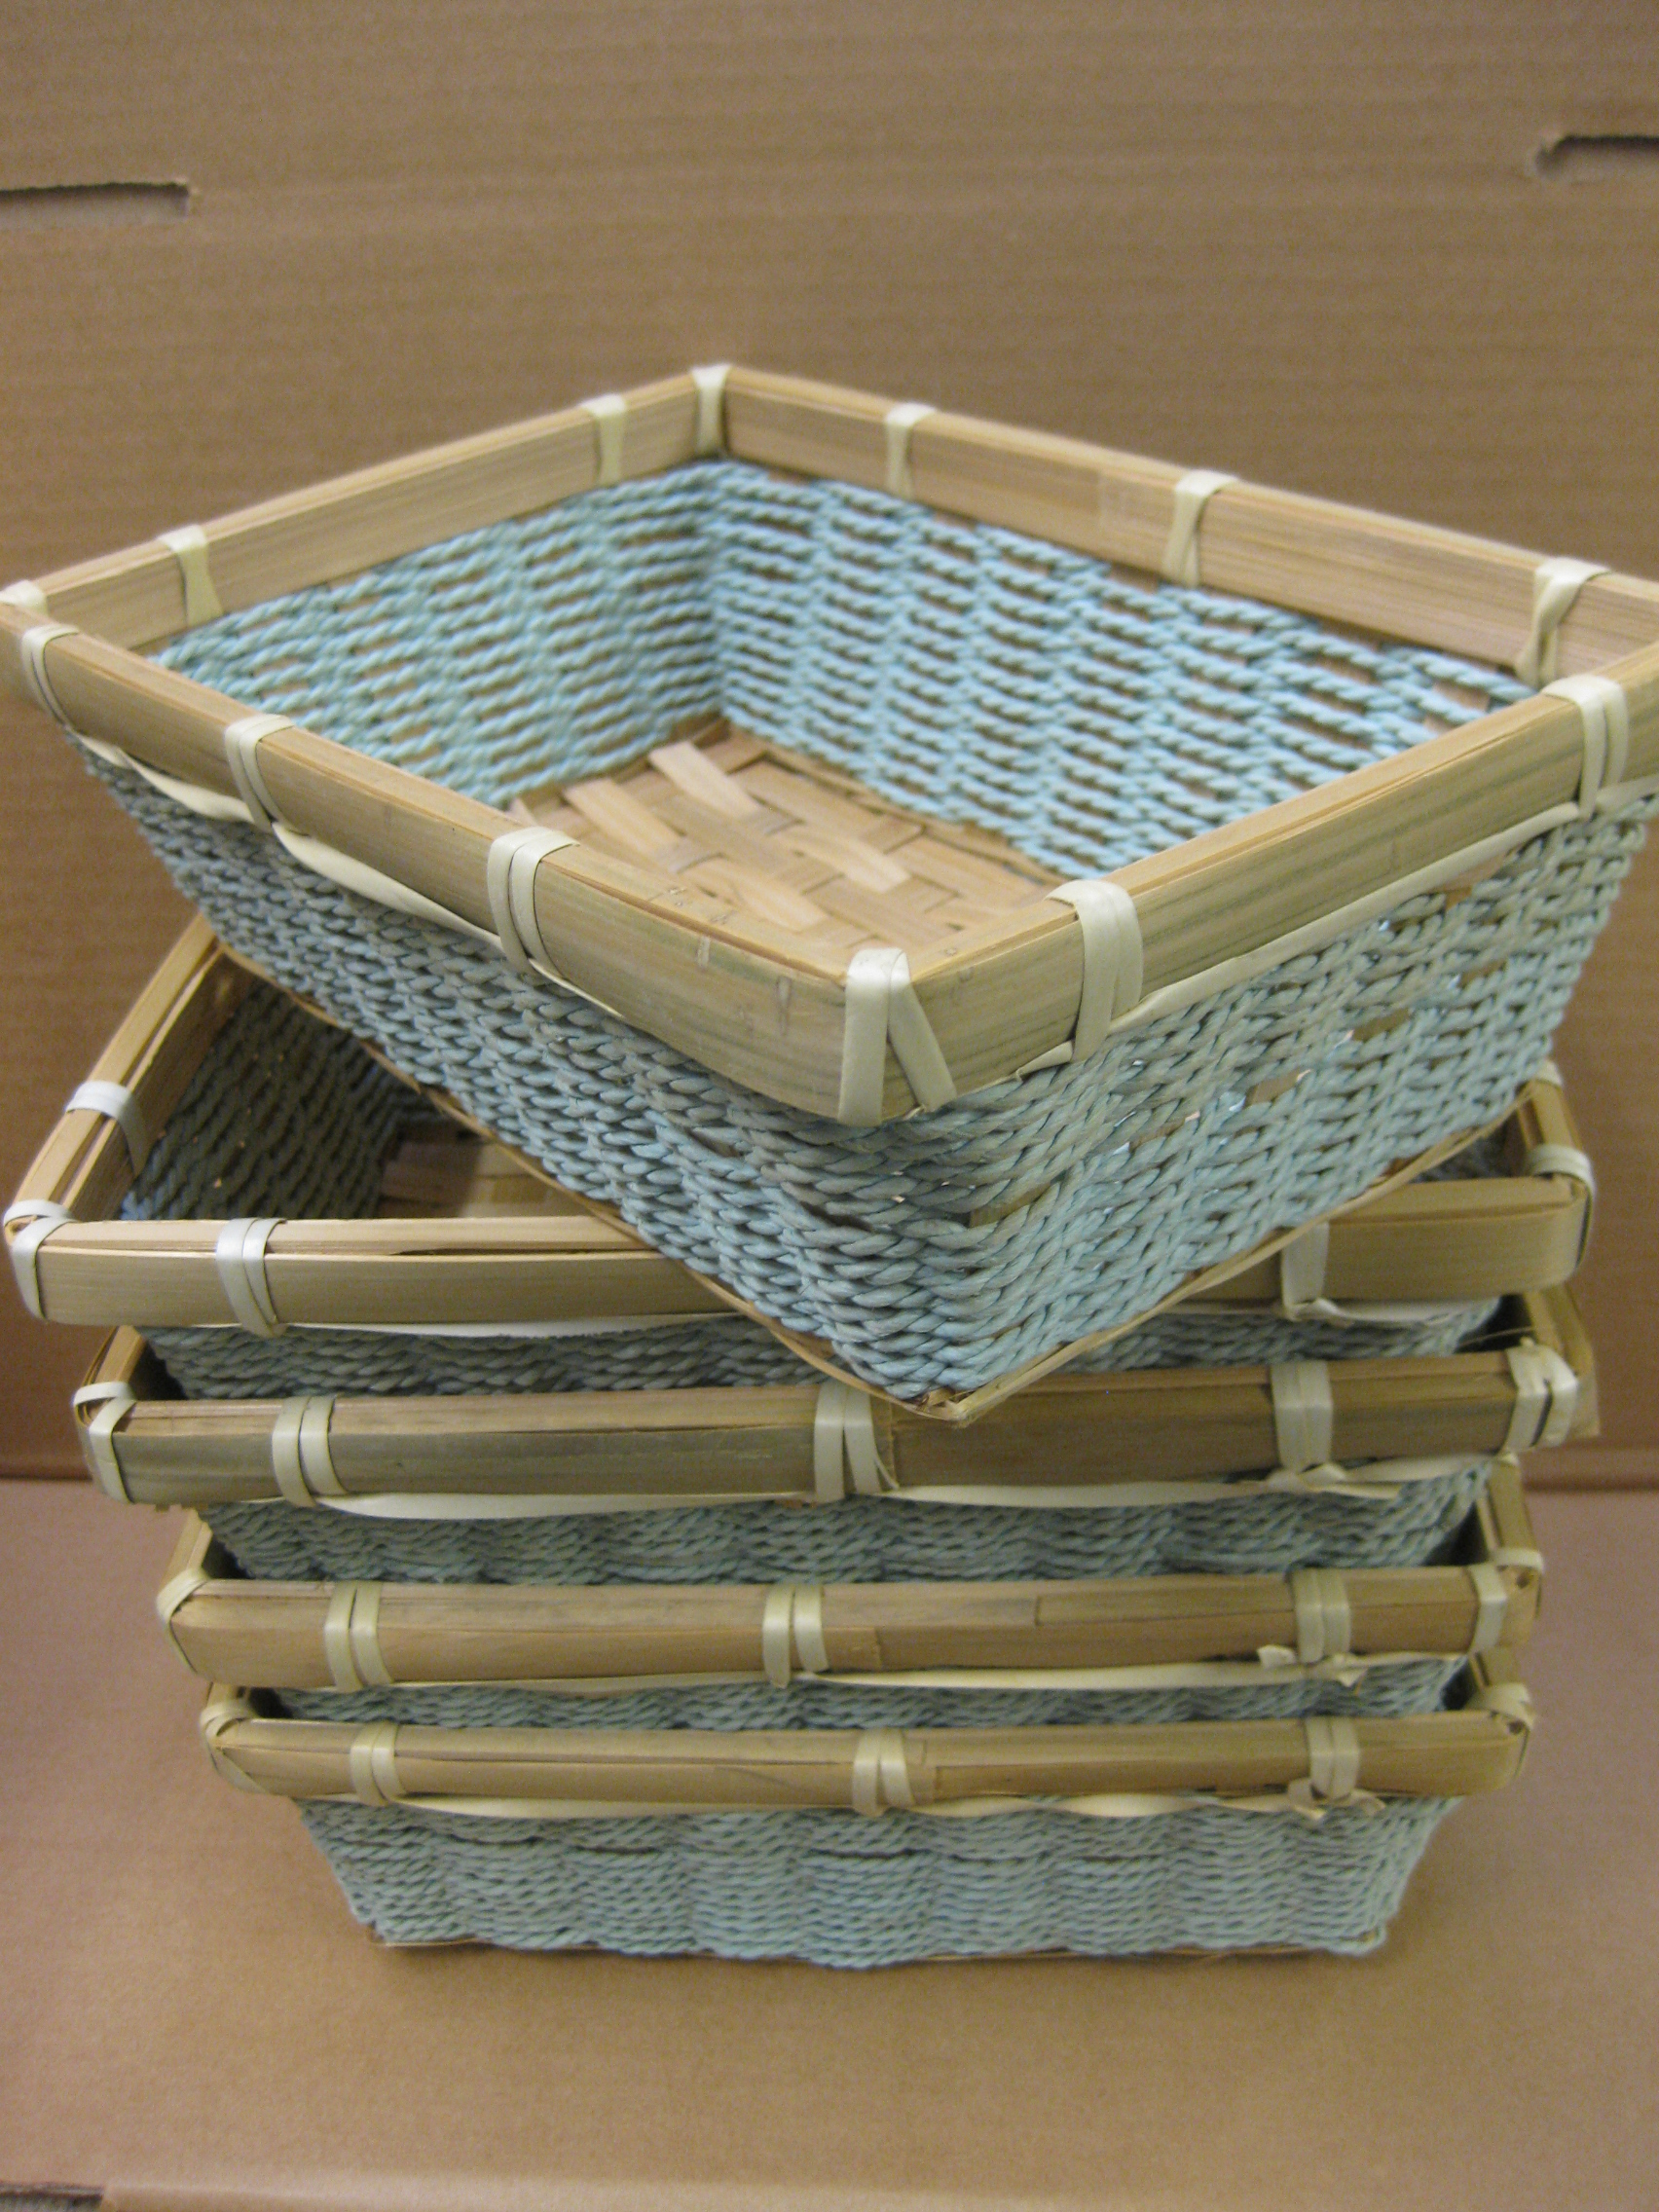 New Kitchen Gift 2 120 Small Aqua Wicker Baskets Gift Table Display Kitchen Home